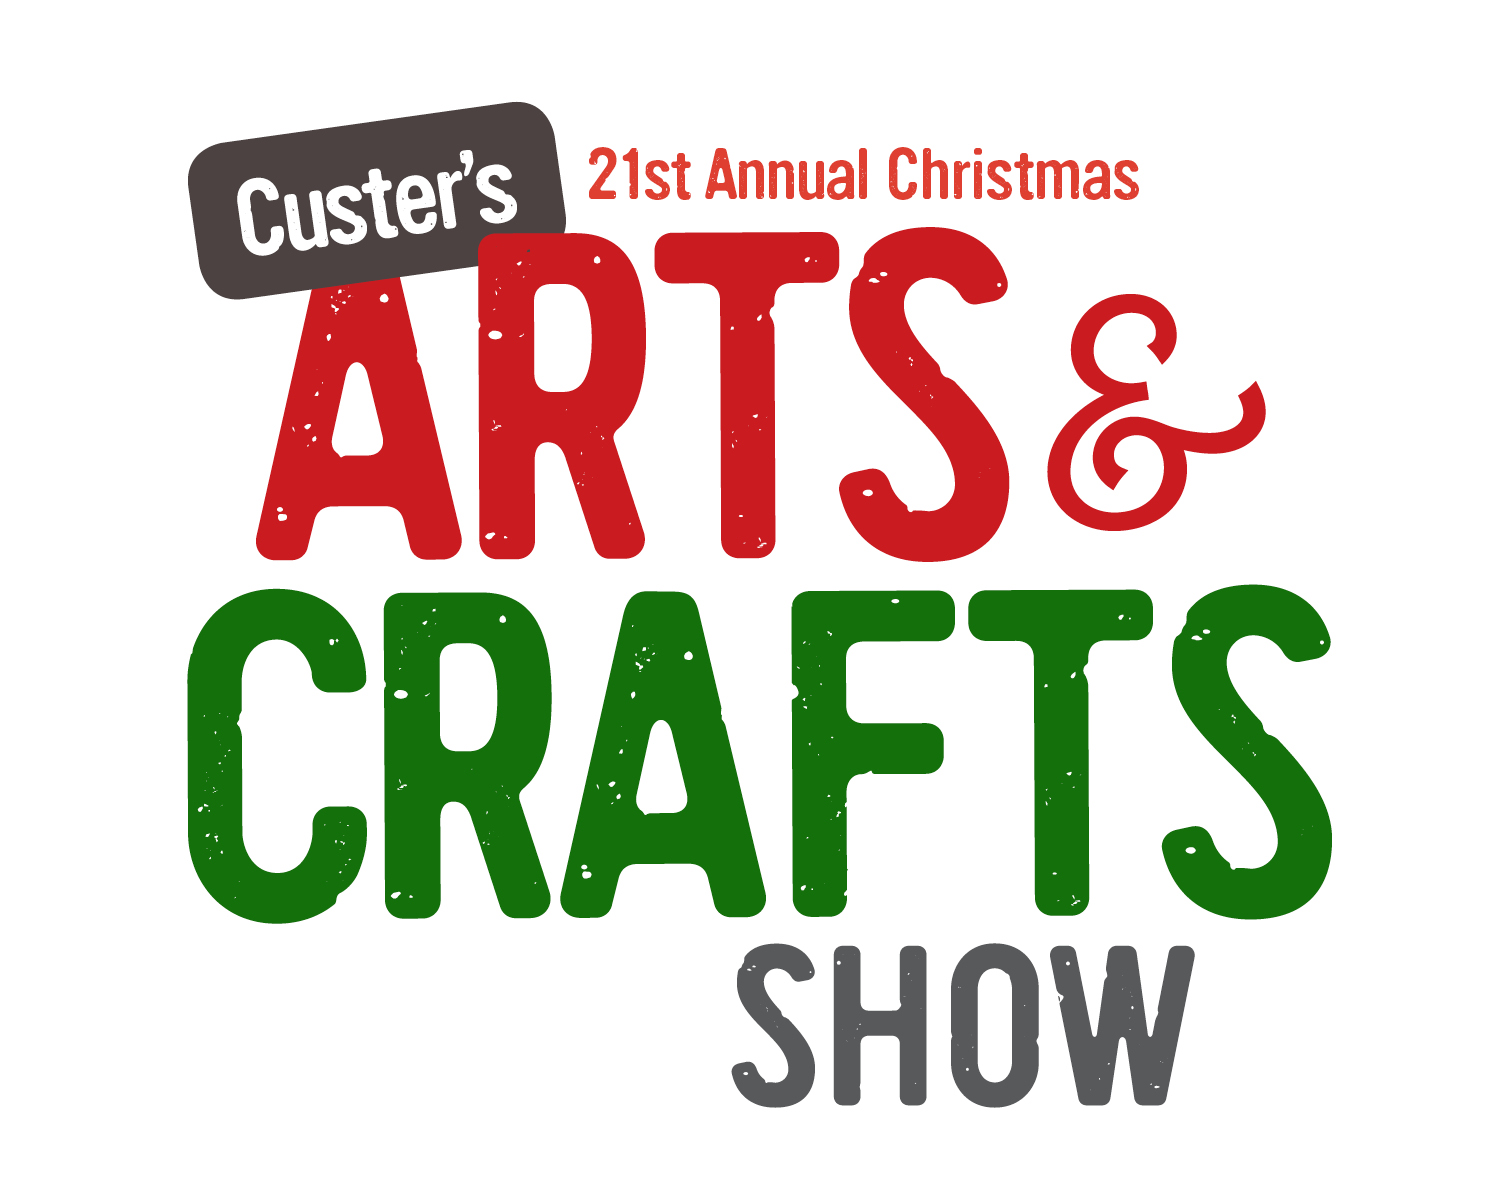 Custer's 21st Christmas Show